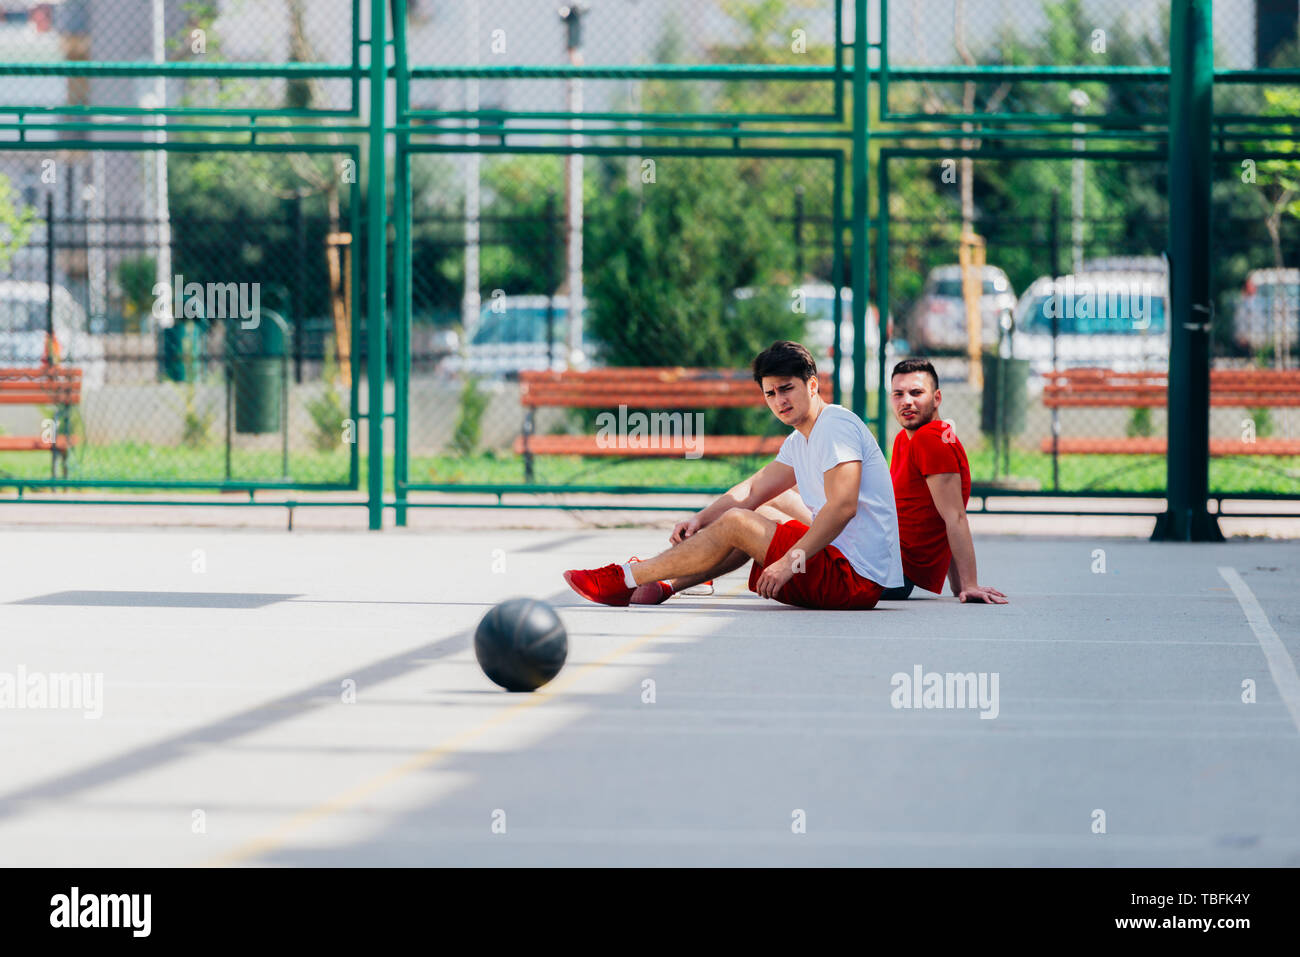 Two Friends After A Long Hard Basketball Game Have Some Rest On The Basketball Court Sitting Next To Each Other And Have A Conversation Stock Photo Alamy